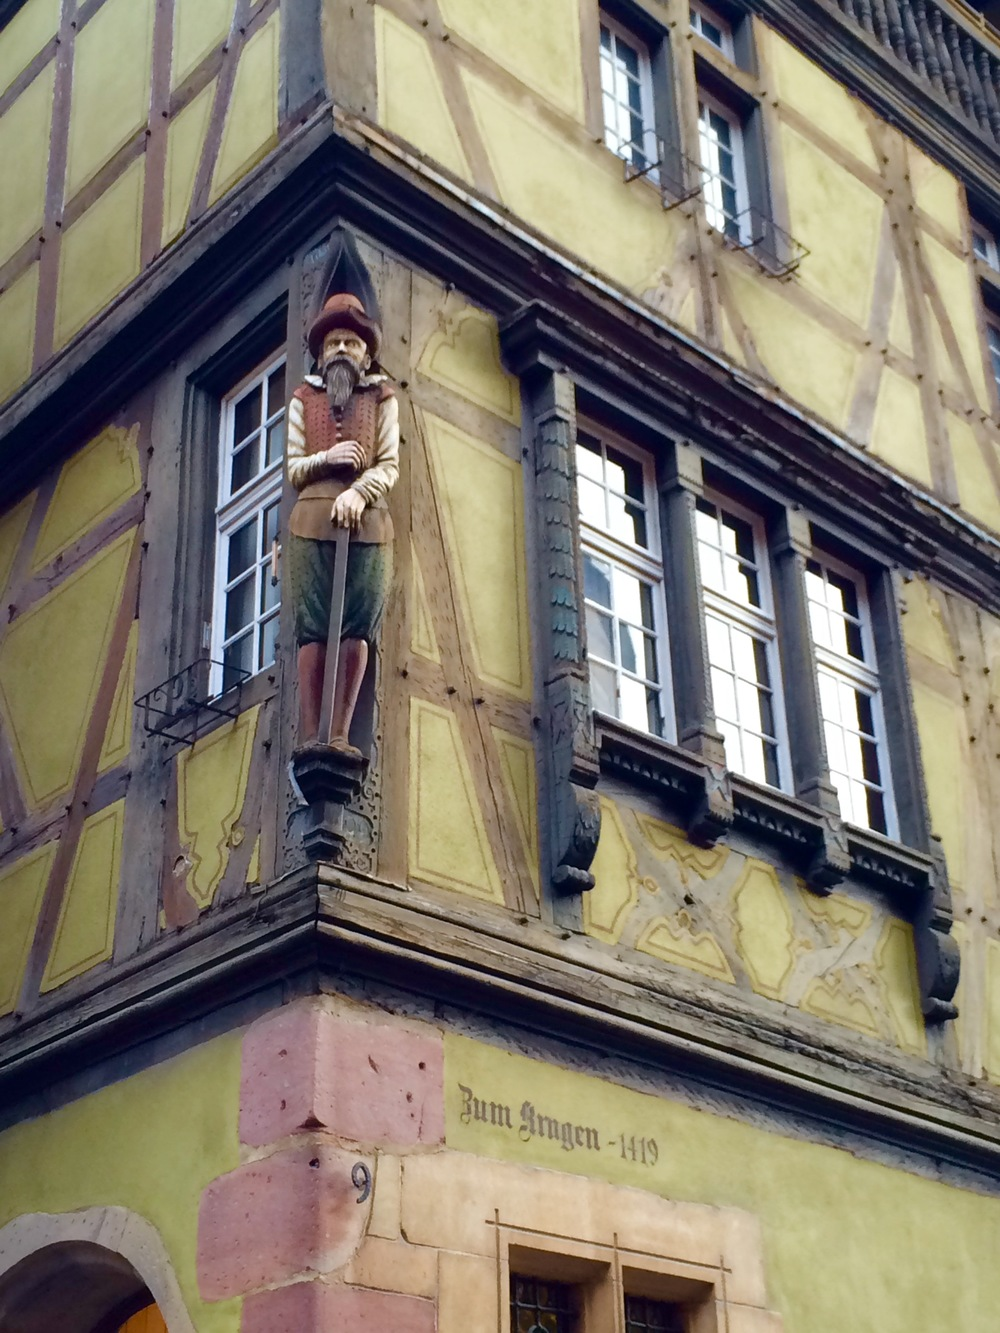 15th Century Building in Colmar, France